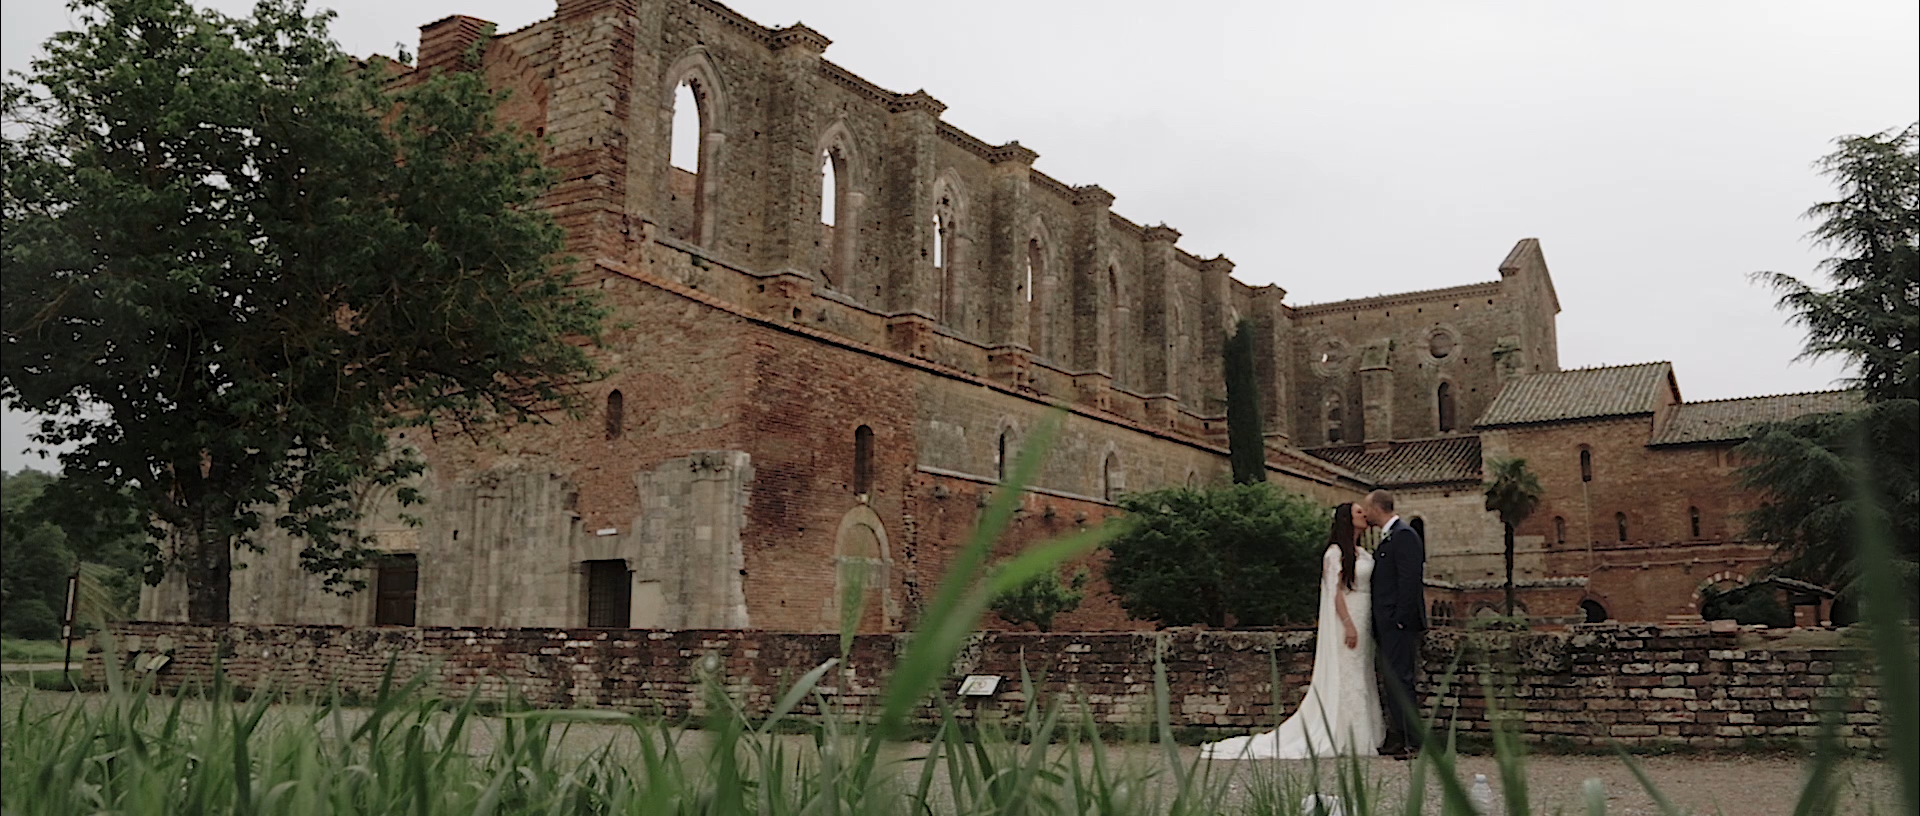 Alicia + Cory | Florence, Italy | Abbey of San Galgano, Florence